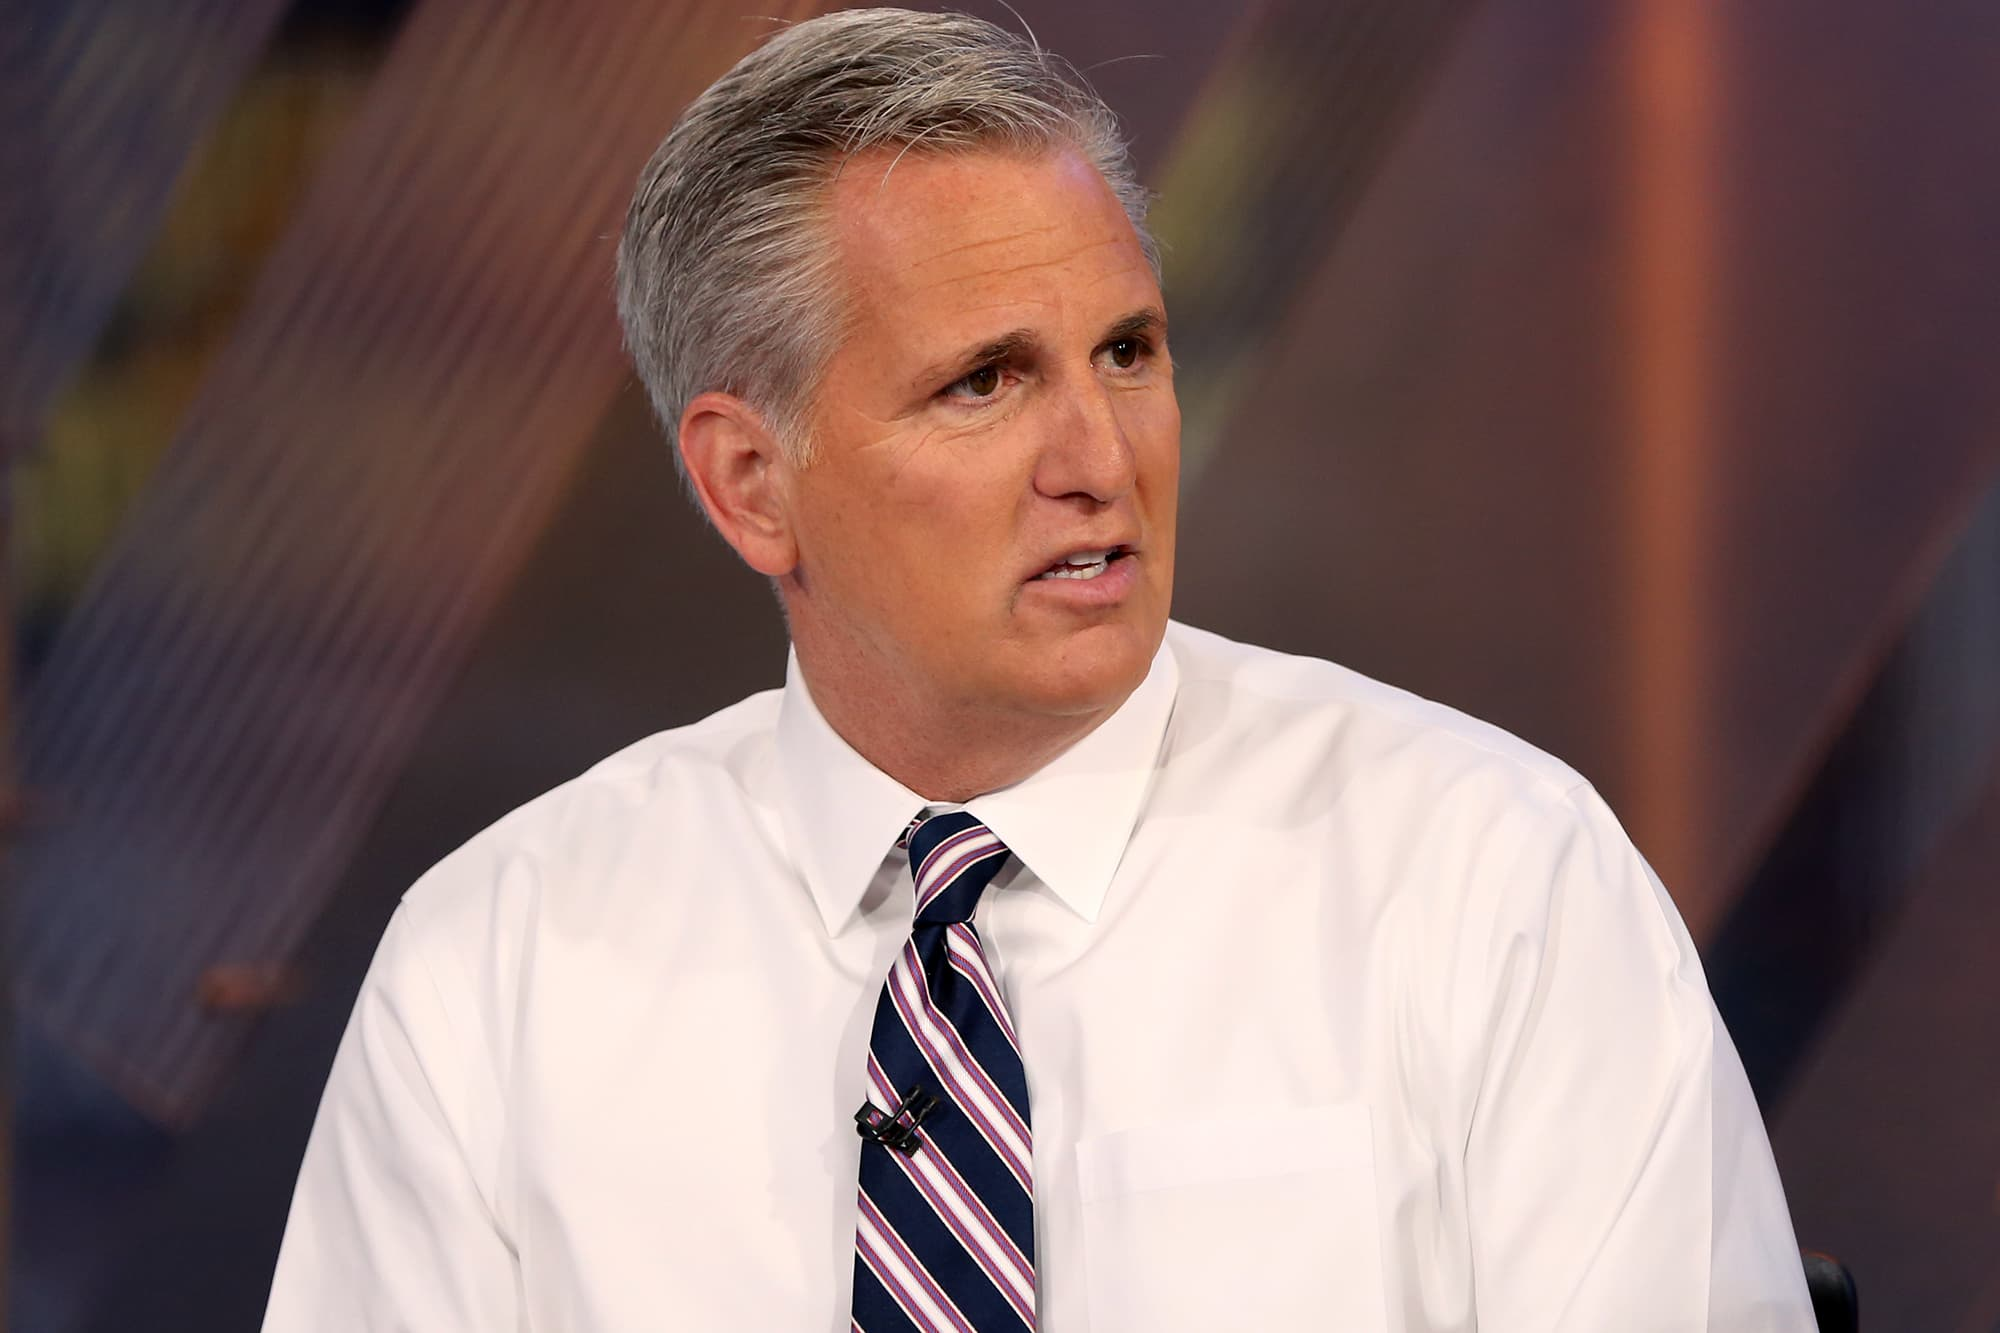 'I like bitcoin,' says House GOP leader McCarthy while bashing Facebook's Libra coin plans